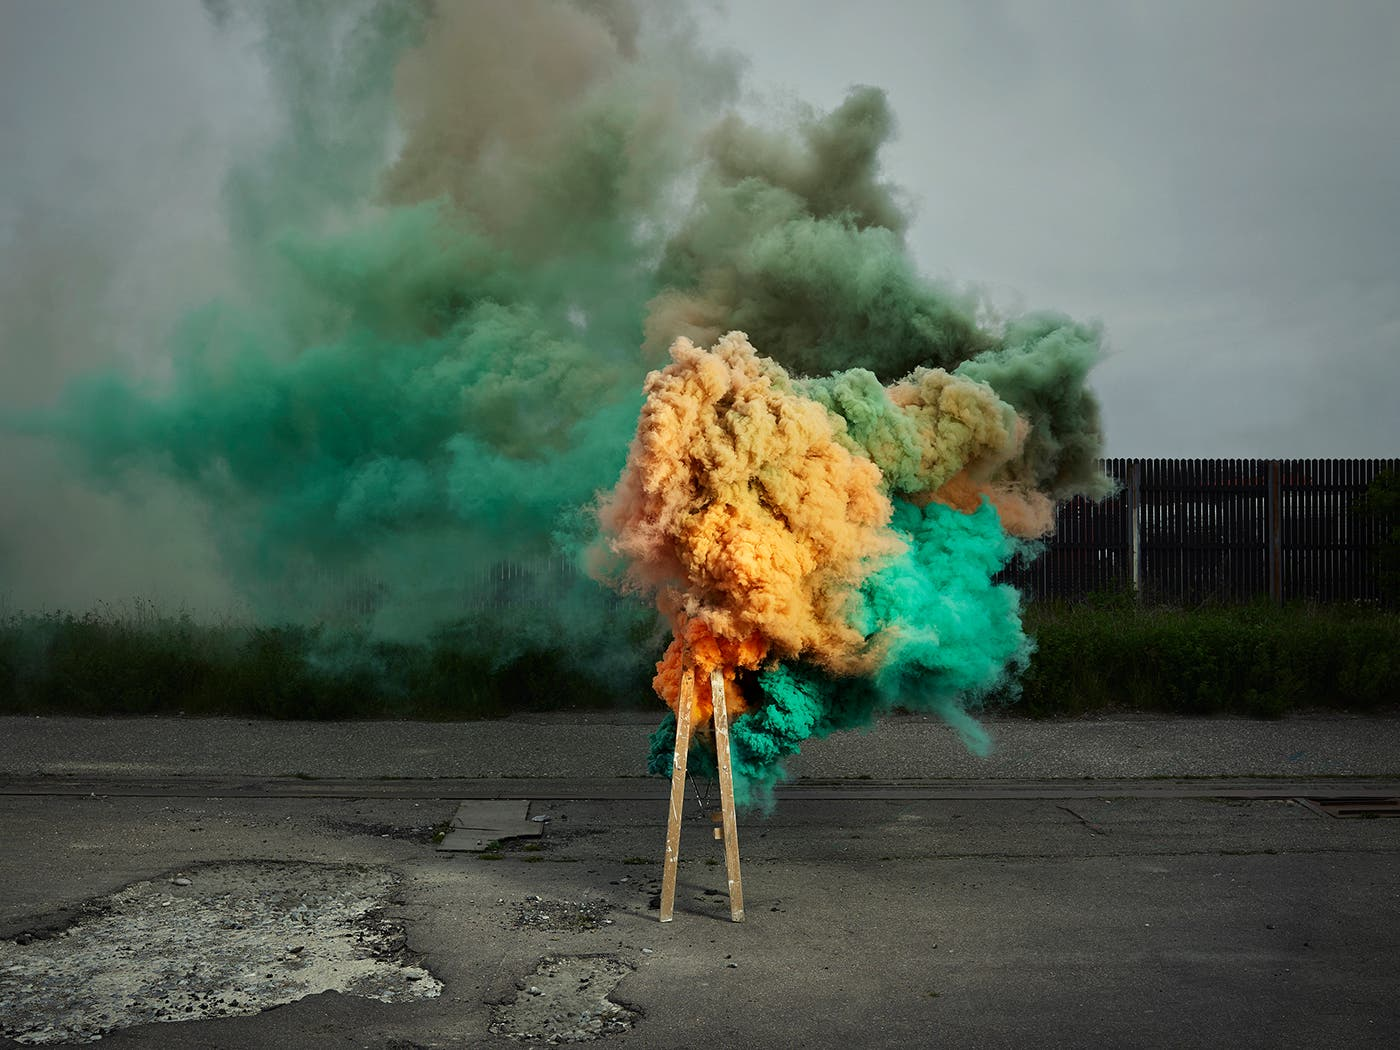 Ken Hermann's Smoke is an Eye-Catching Explosion of Color